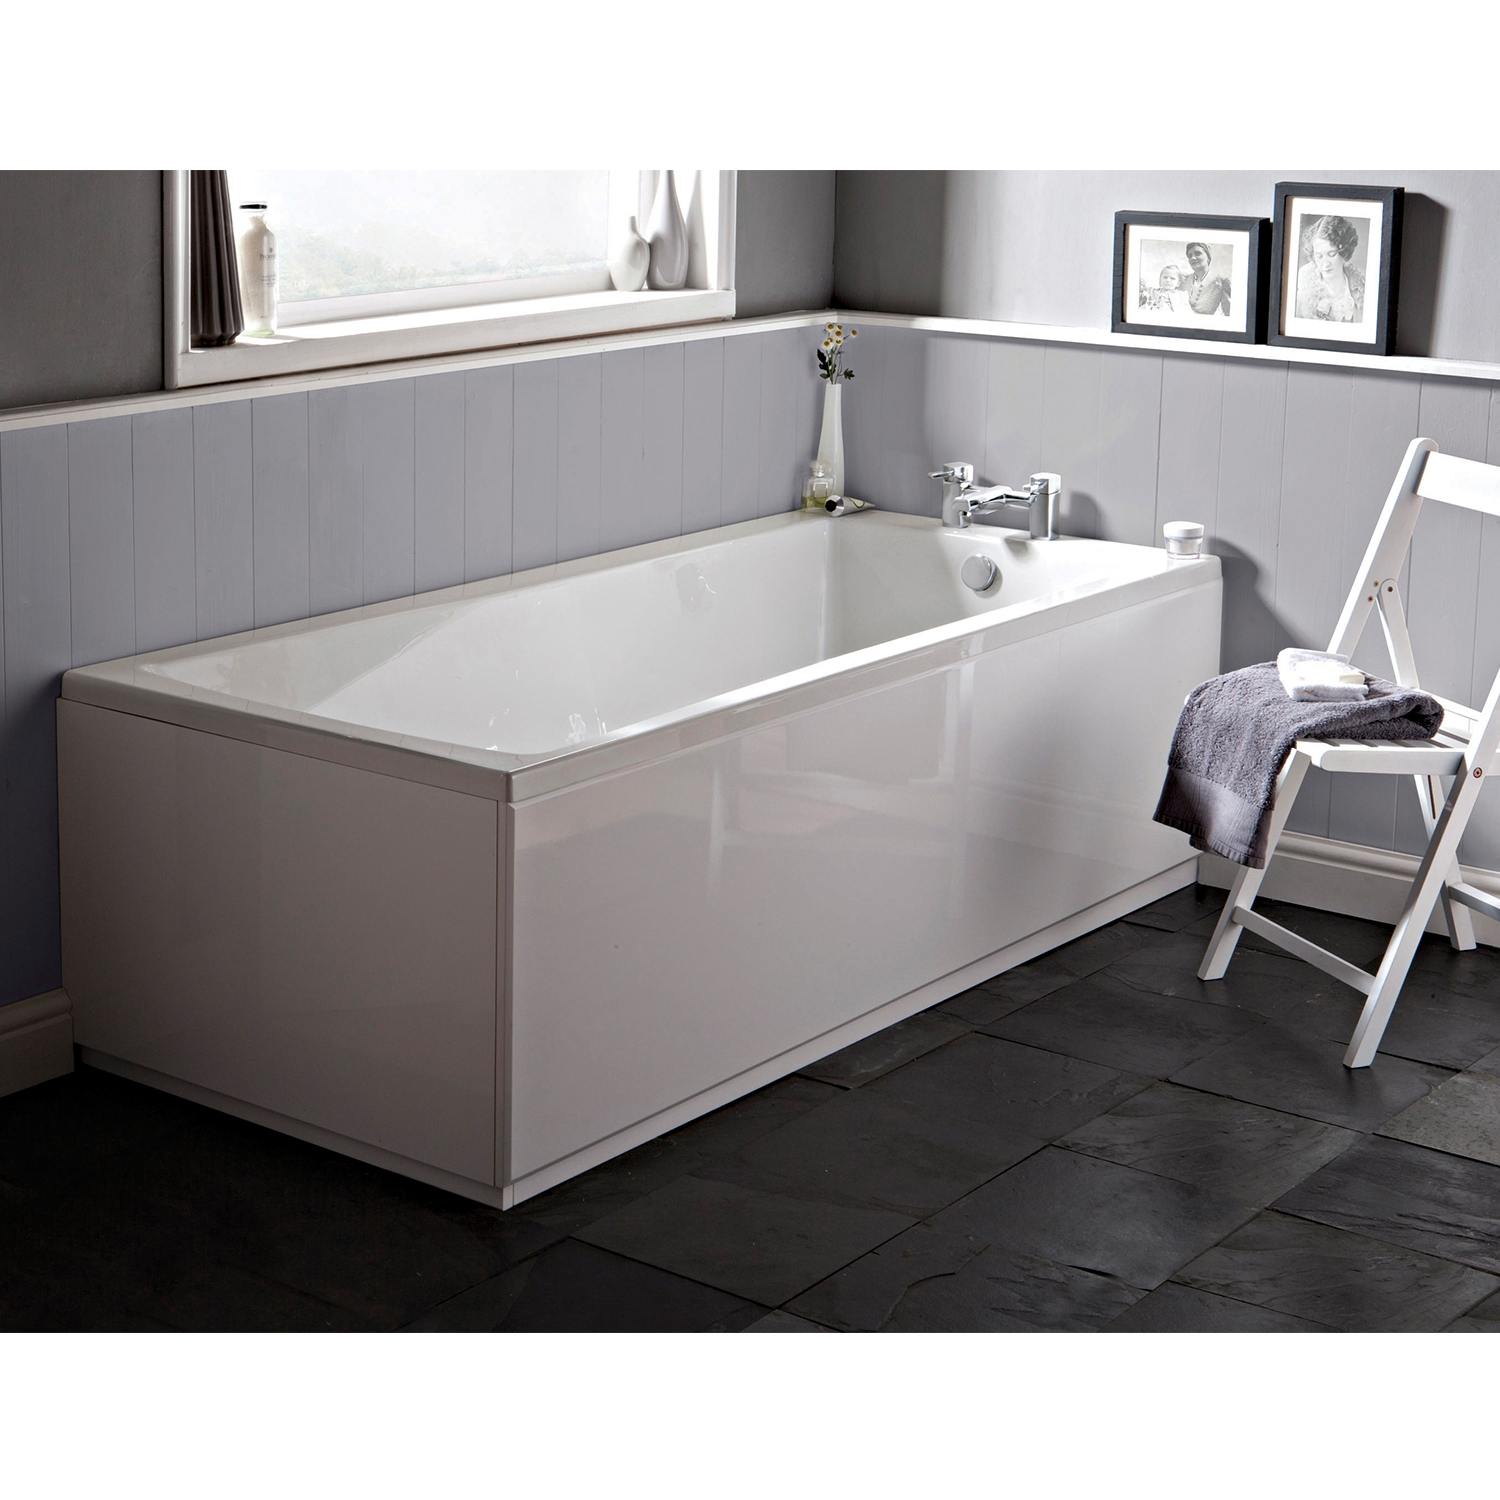 Hudson Reed Linton Single Ended Rectangular Bath 1700mm x 750mm - Eternalite